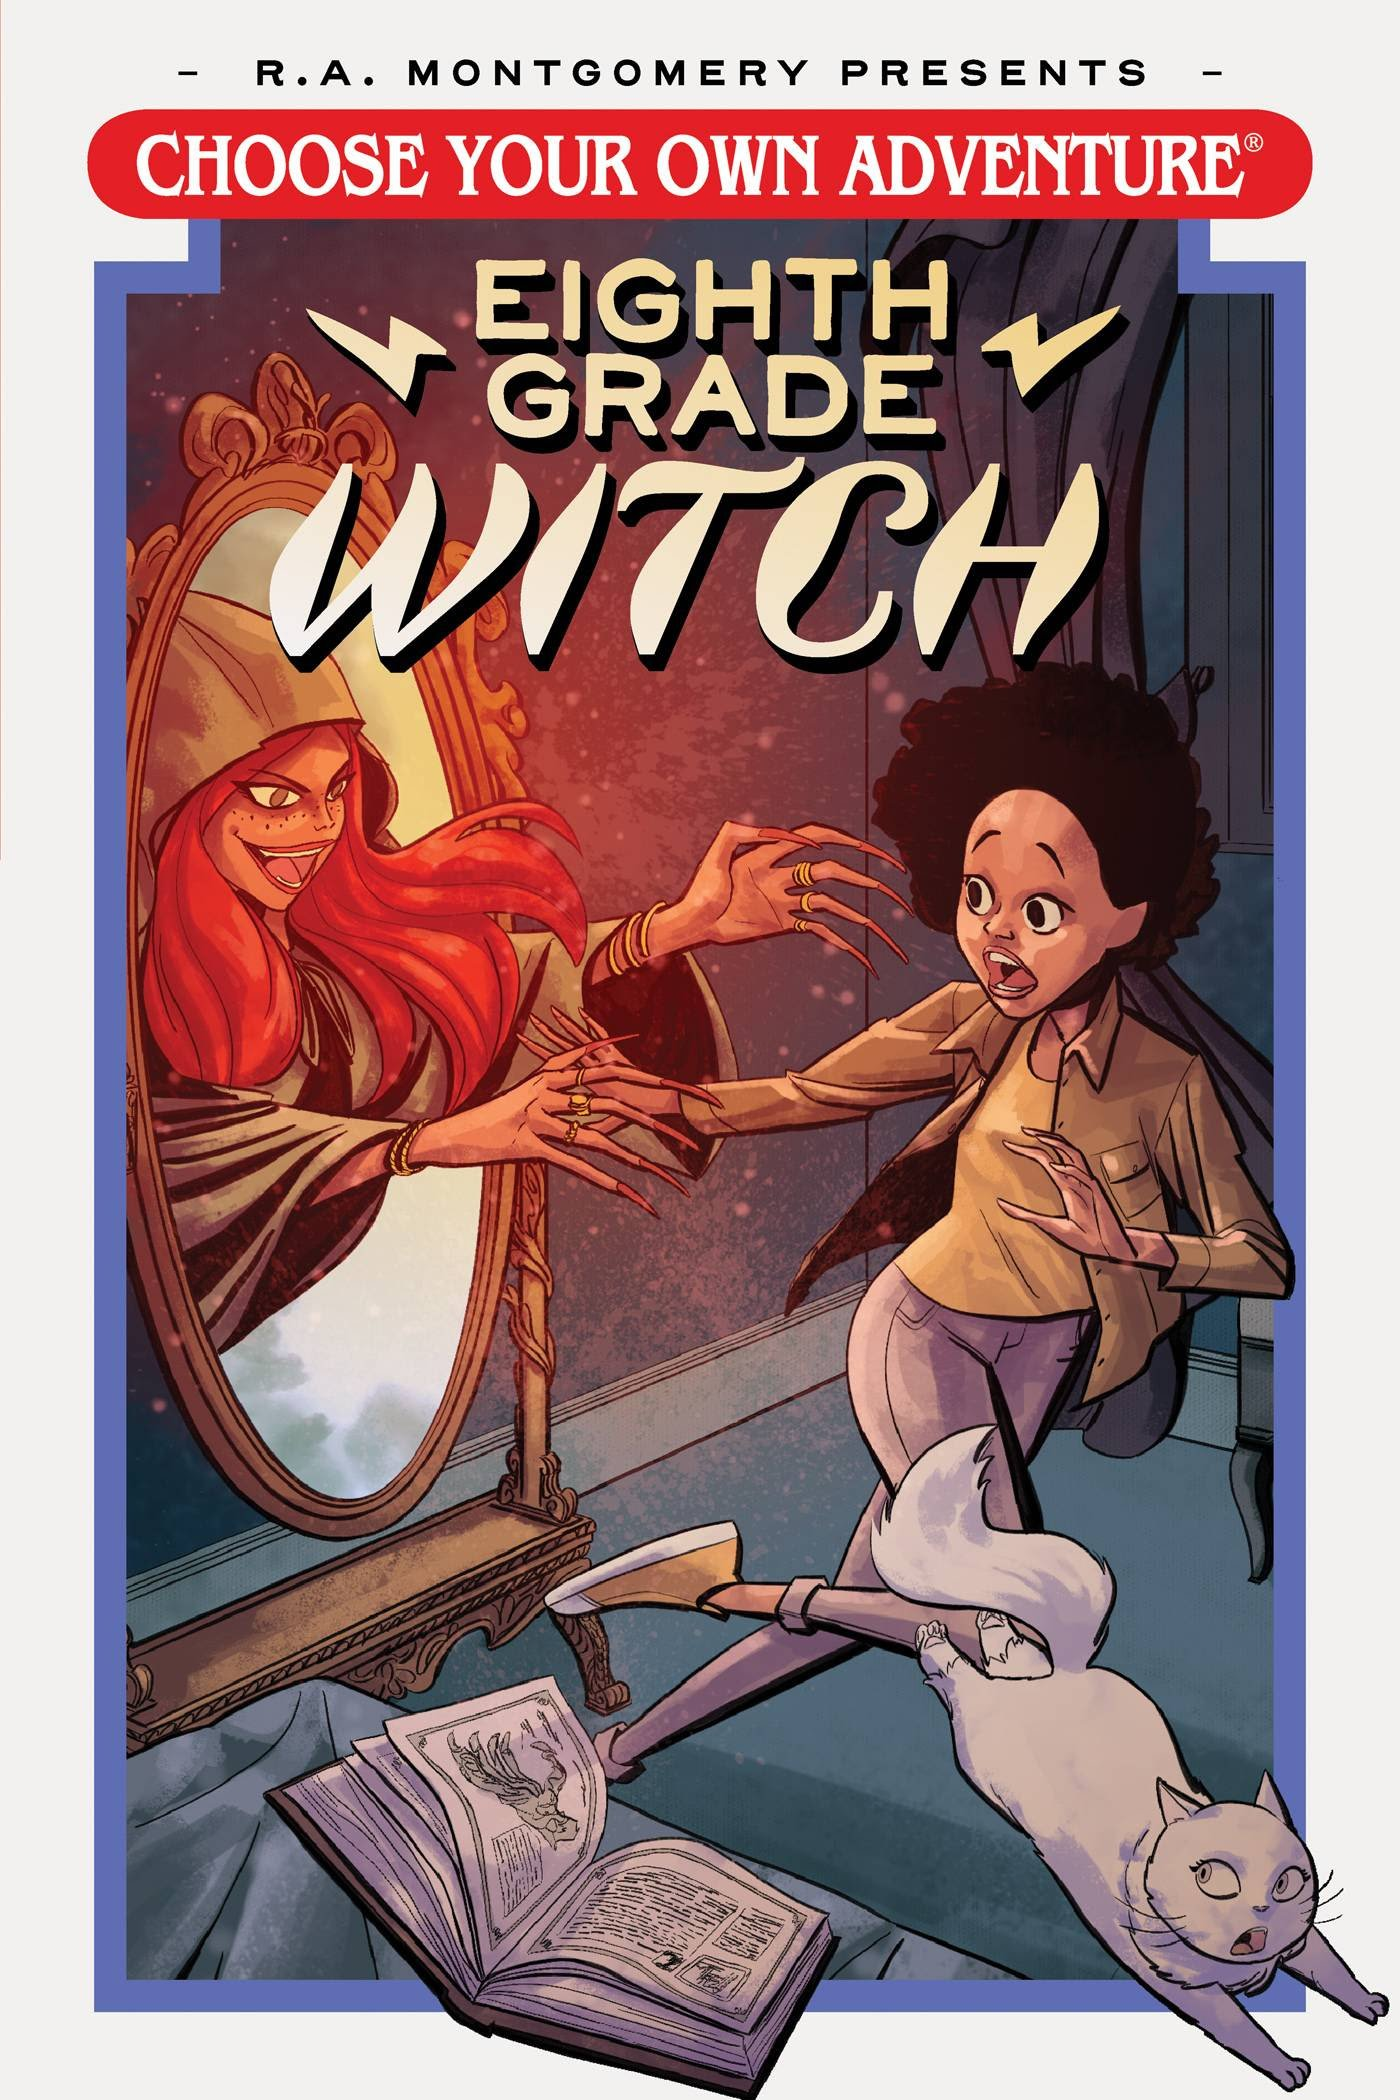 Choose Your Own Adventure - Eighth Grade Witch